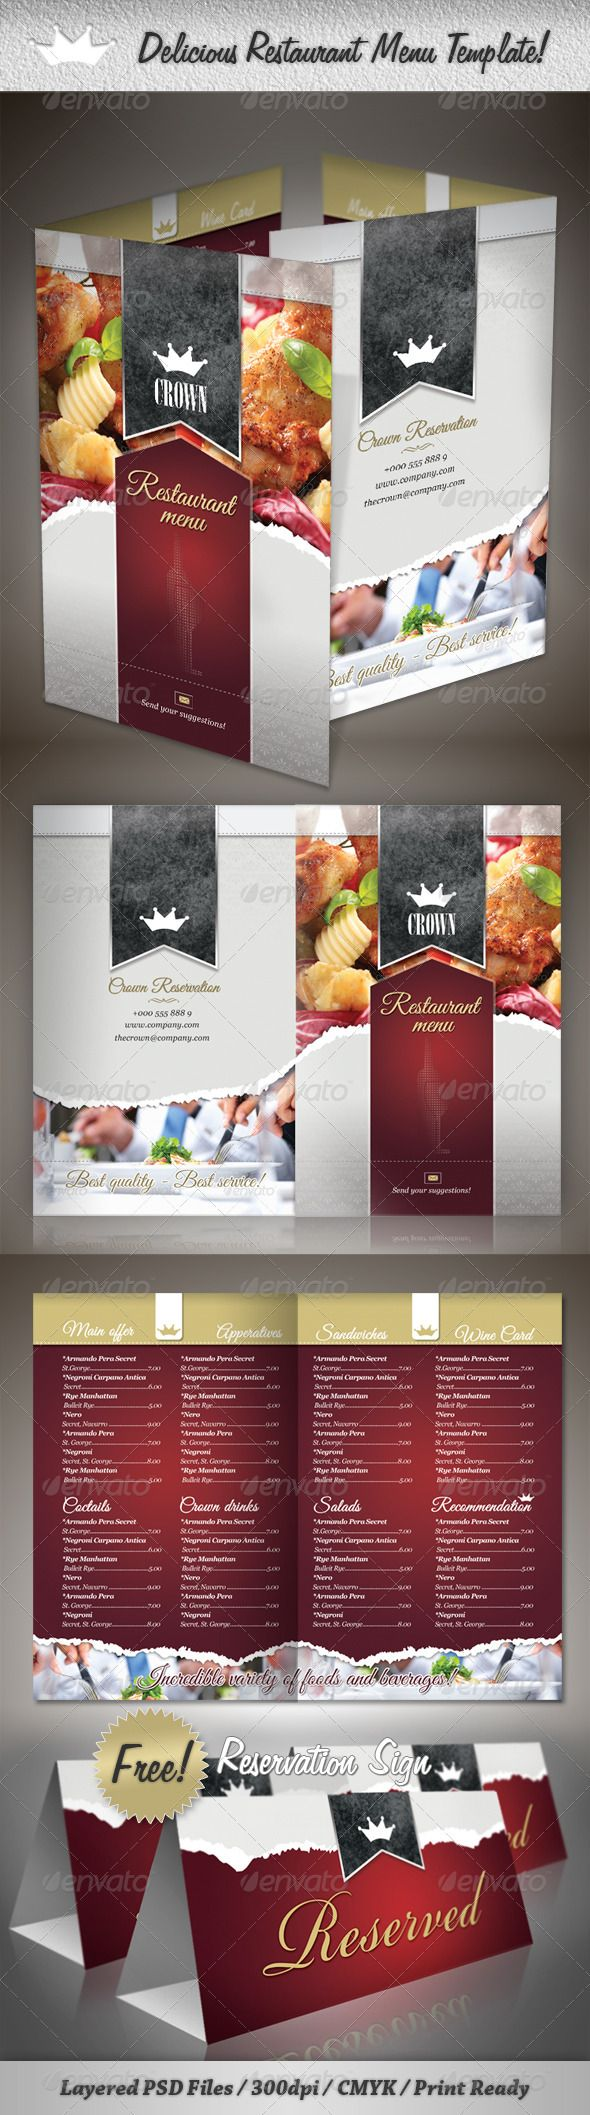 tri fold restaurant menu templates thevillas co